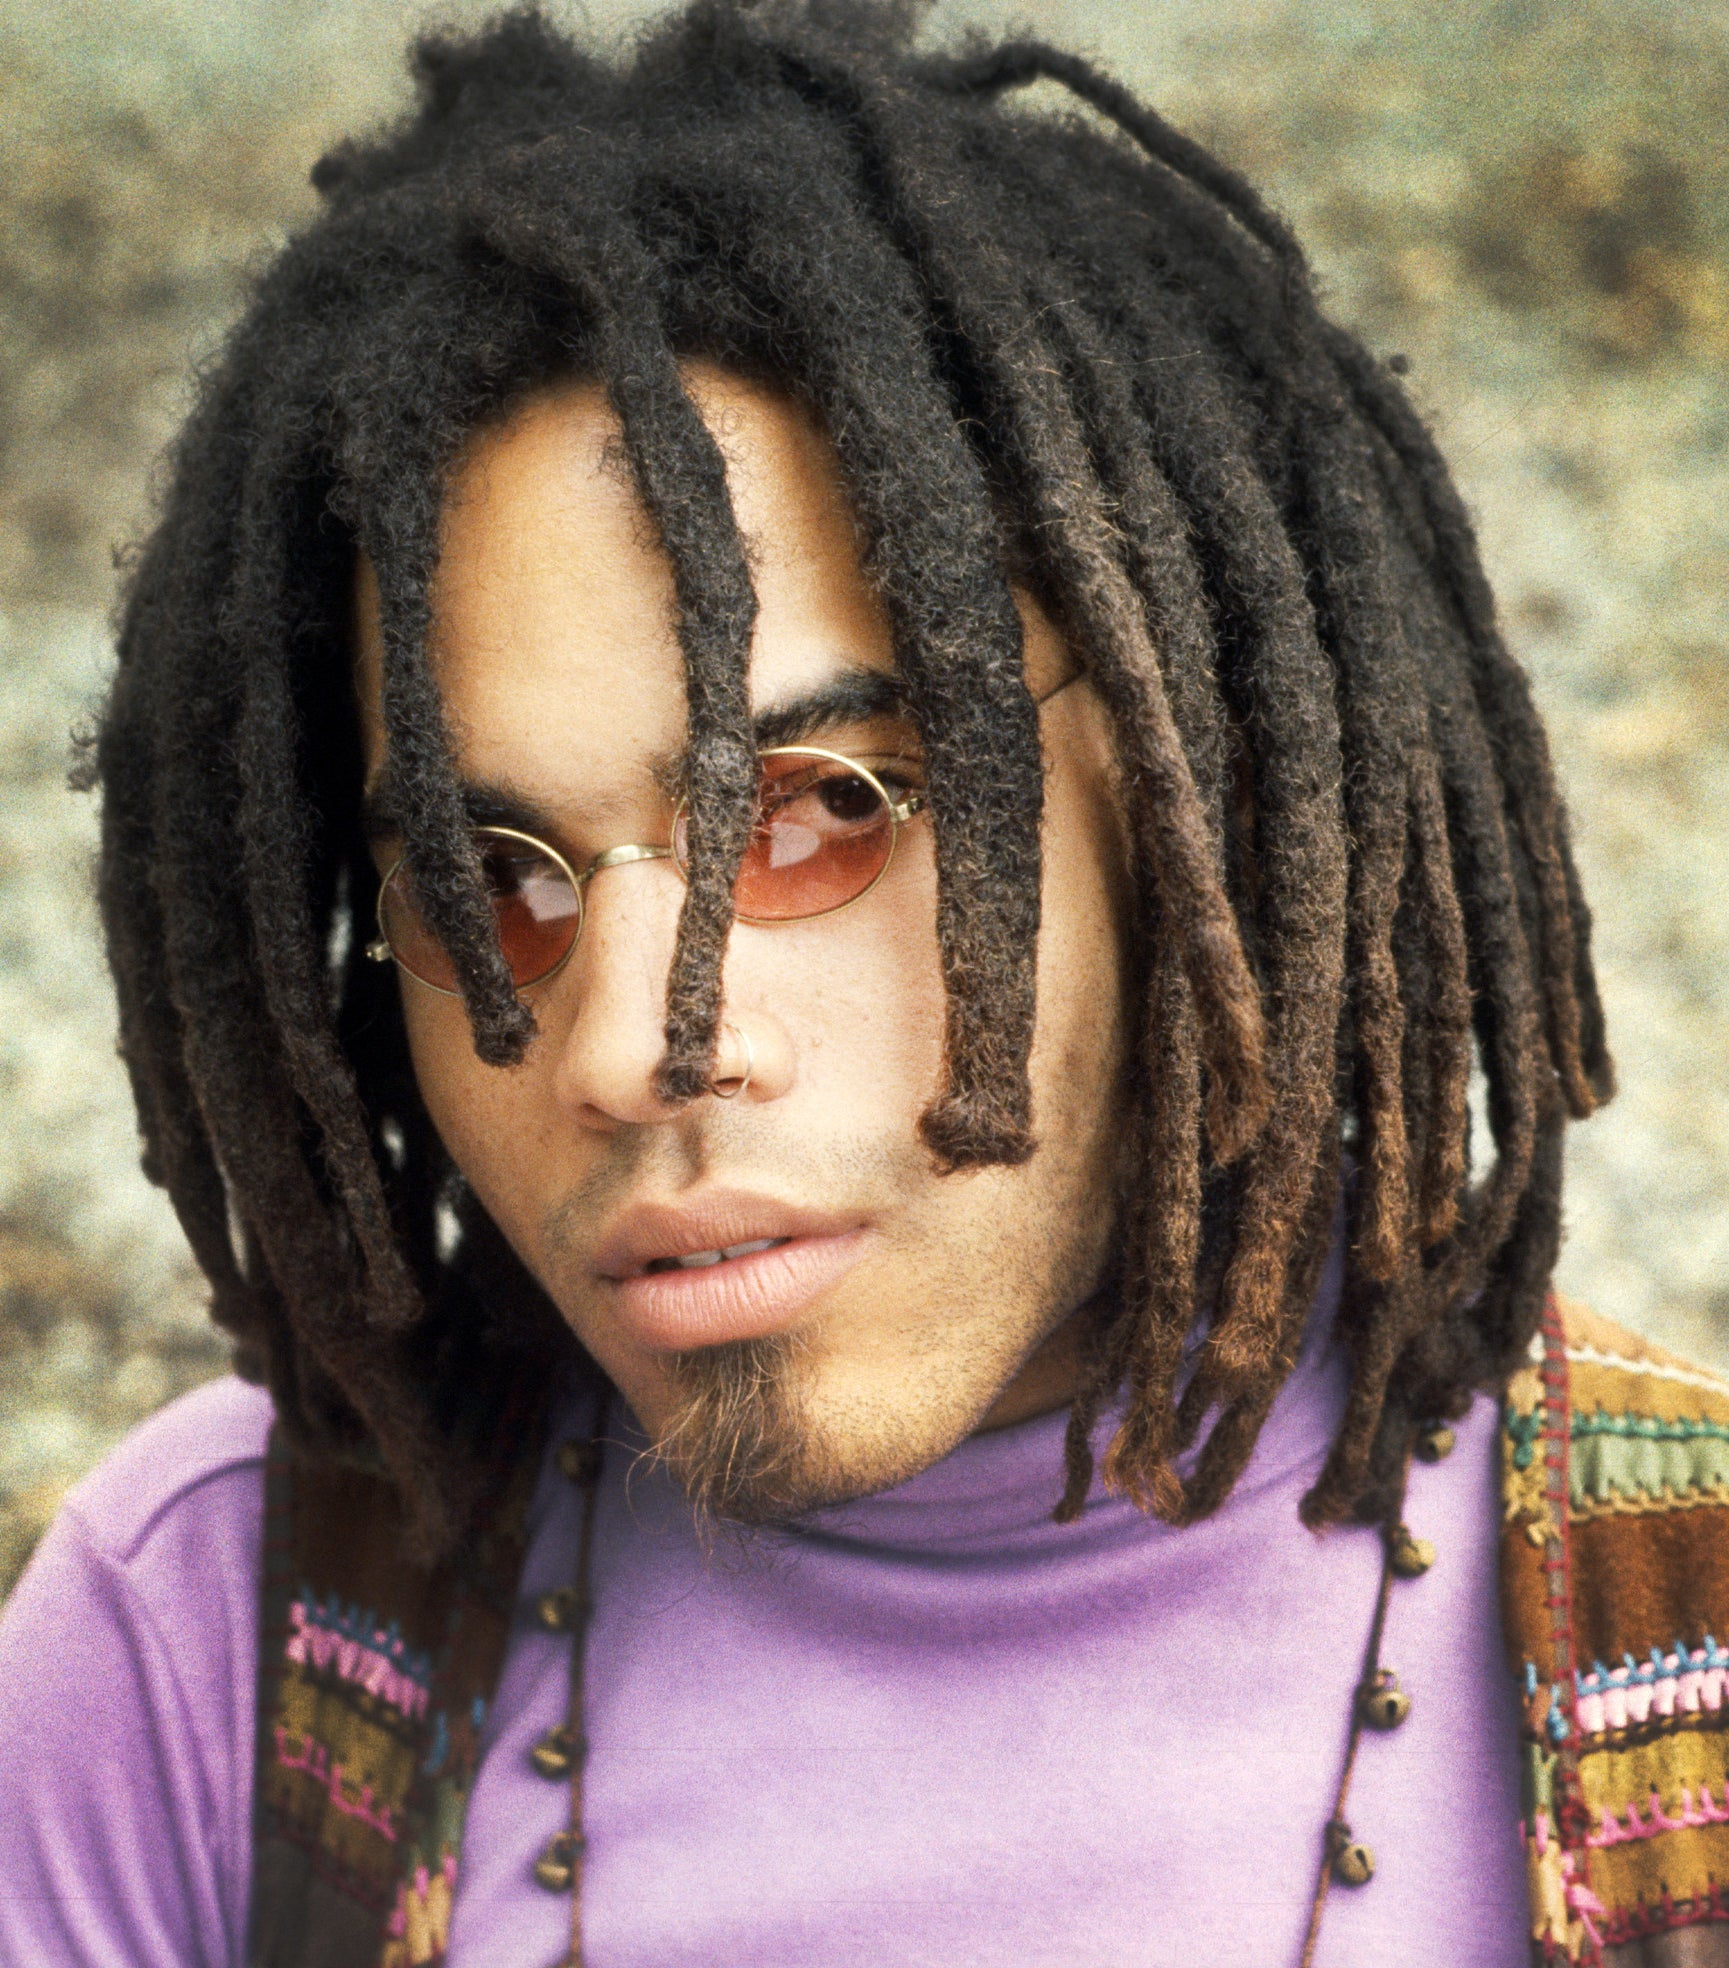 Lenny Kravitz with shorter dreads and sunglasses, wearing a purple turtleneck and striped vest